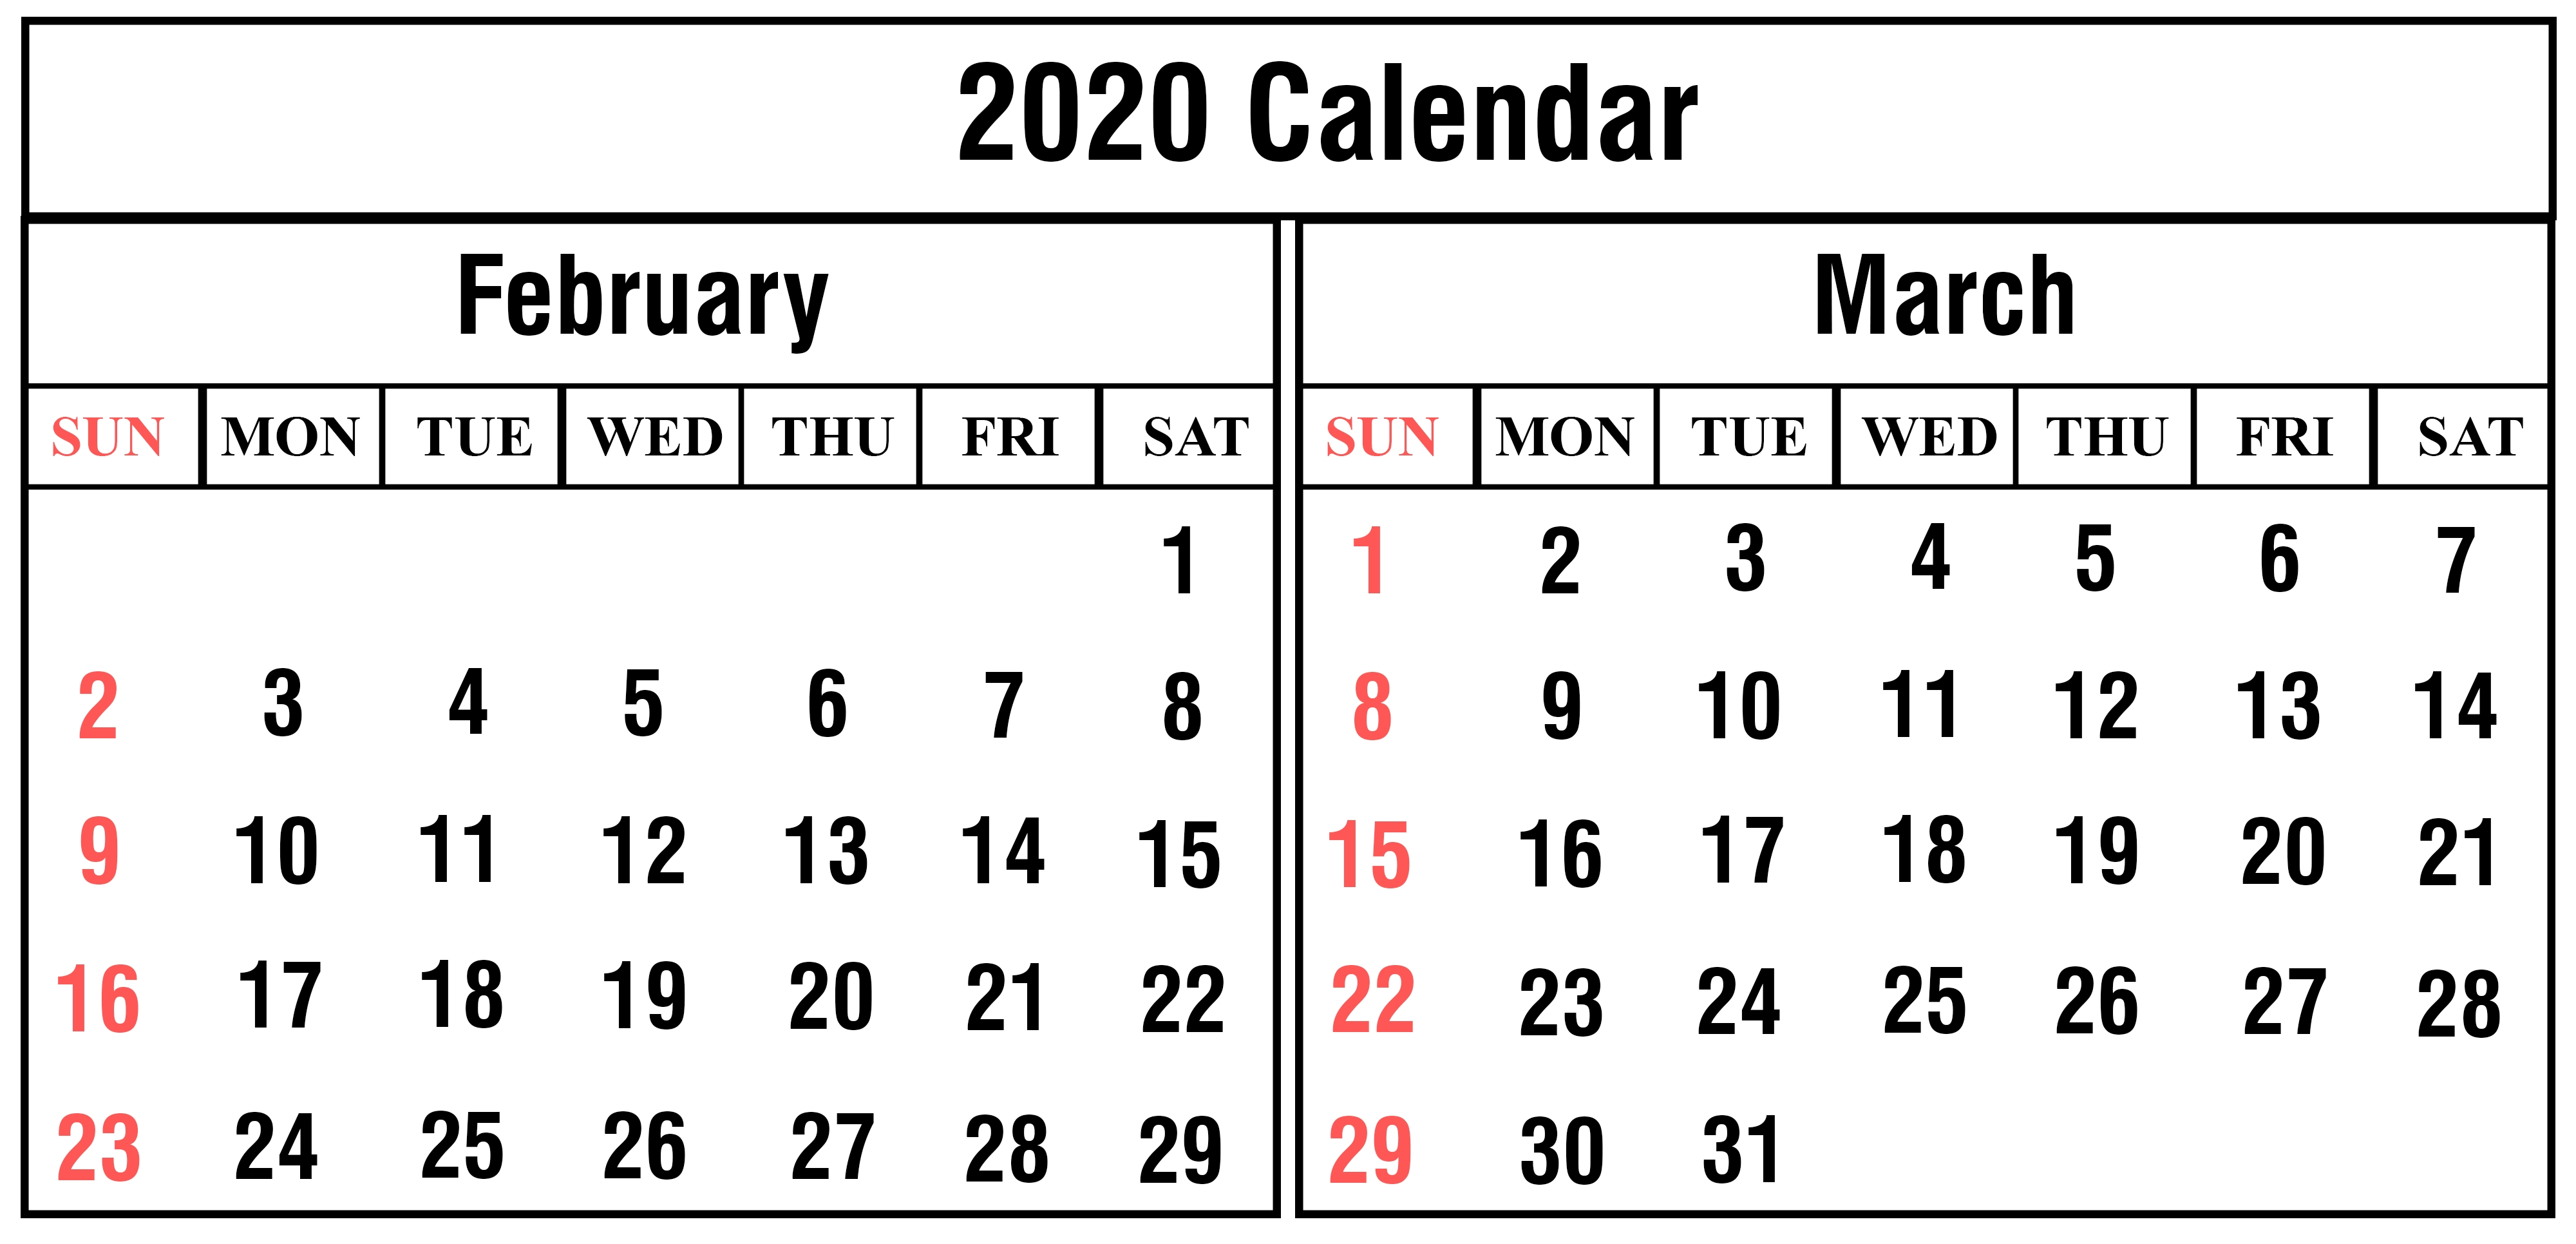 Calendar For February And March 2020 | Calendar Template throughout February And March 2020